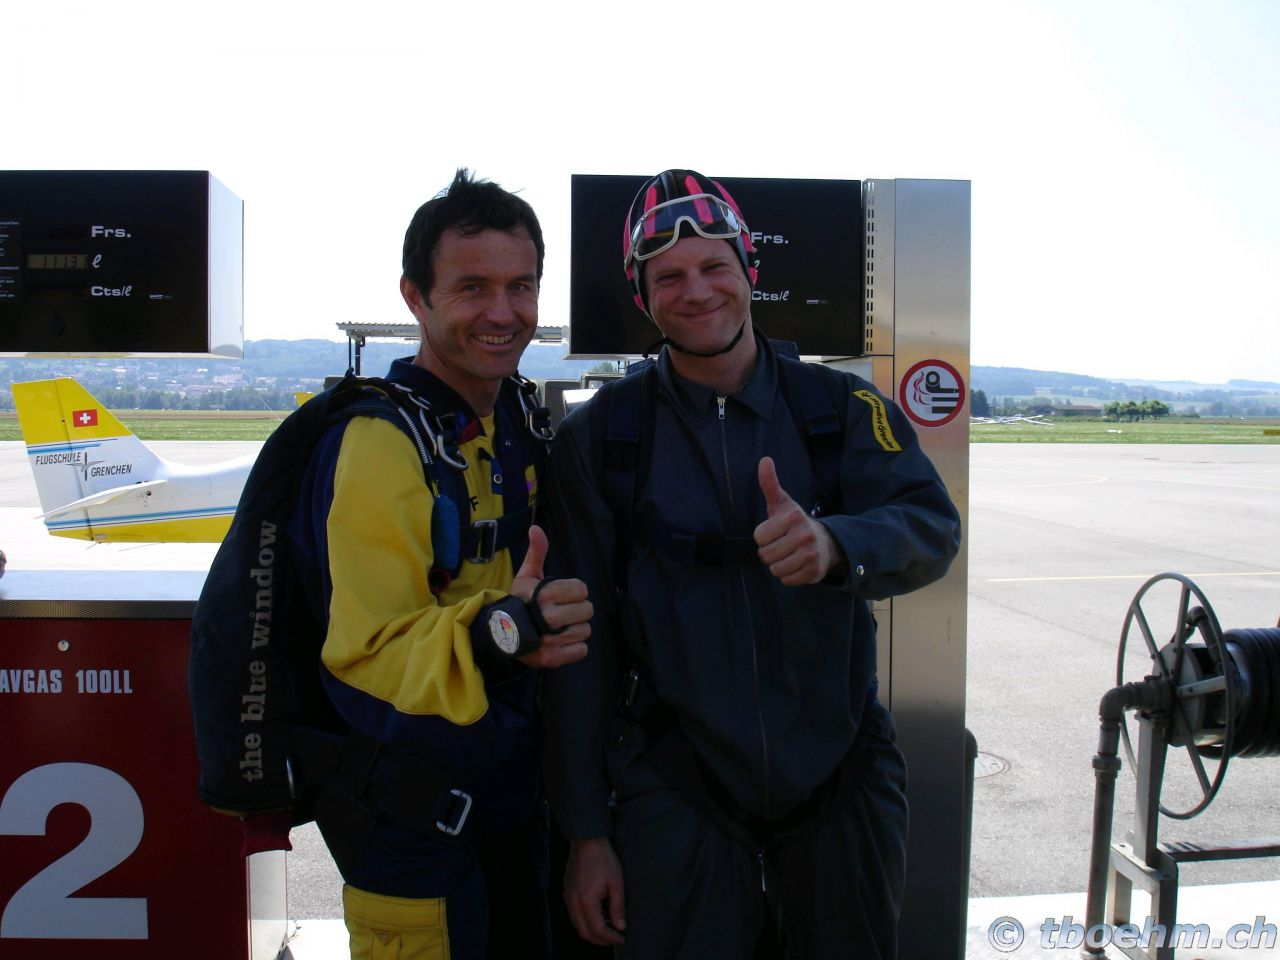 skydive_grenchen_16_07_2006_17_20121125_1032839189